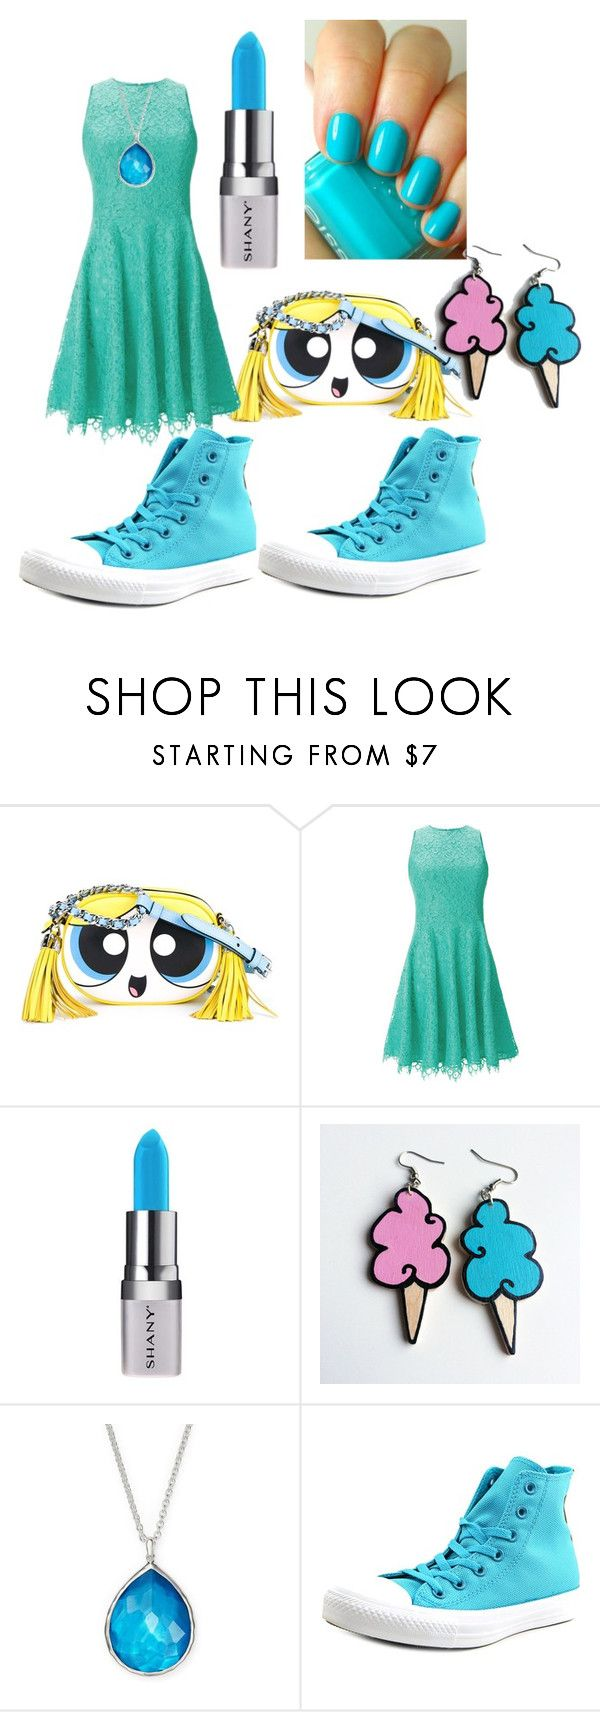 """powerpuff girl bubbles"" by asiagandy ❤ liked on Polyvore featuring Moschino, Shoshanna, Shany, Essie, Junk Food Clothing, Ippolita, Converse, bubbles and PowerpuffGirls"